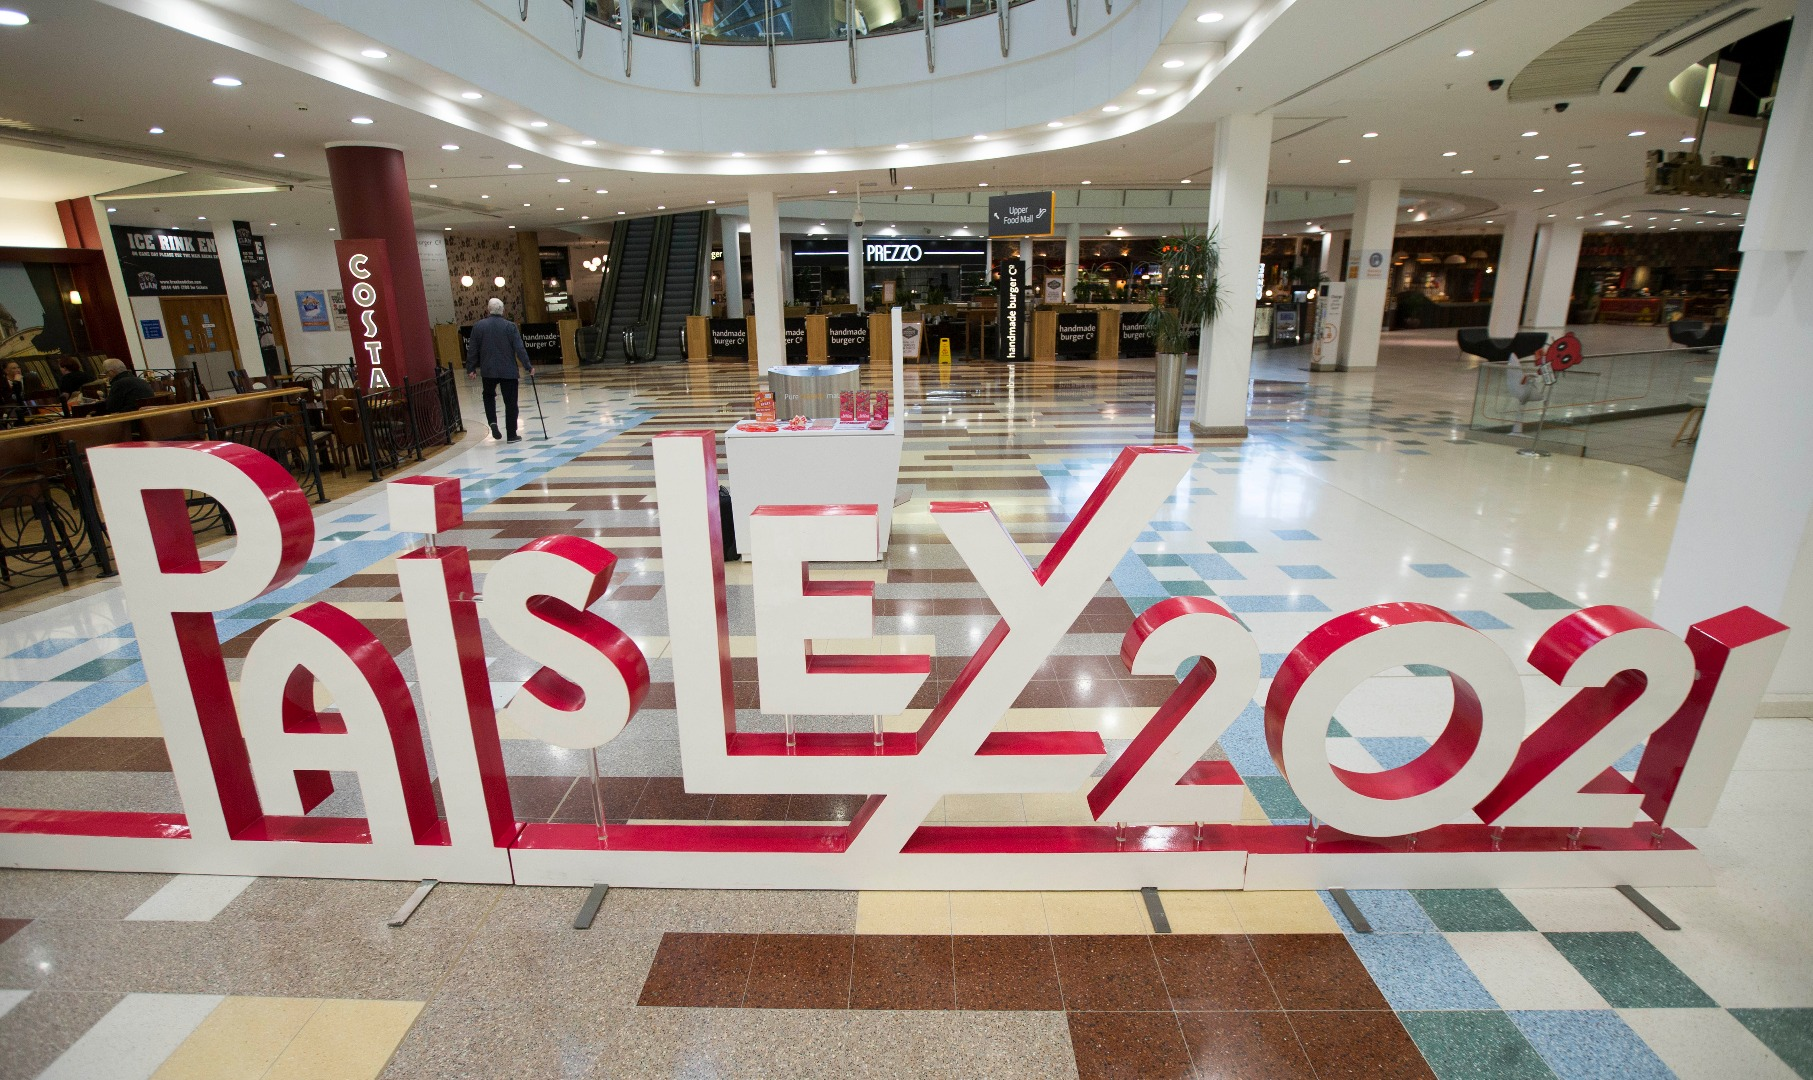 Paisley 2021 set to take over intu Braehead